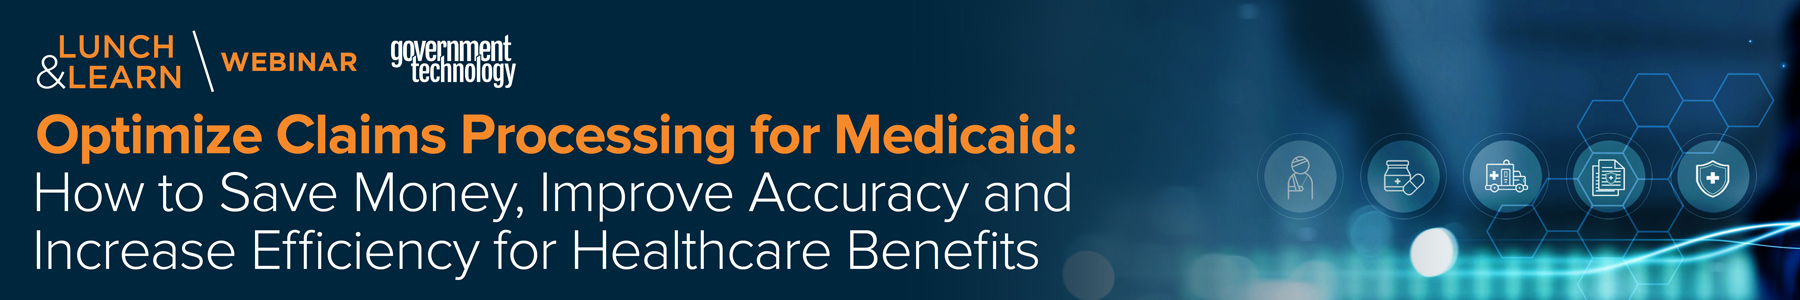 Optimize Claims Processing for Medicaid: How to Save Money, Improve Accuracy and Increase Efficiency for Healthcare Benefits